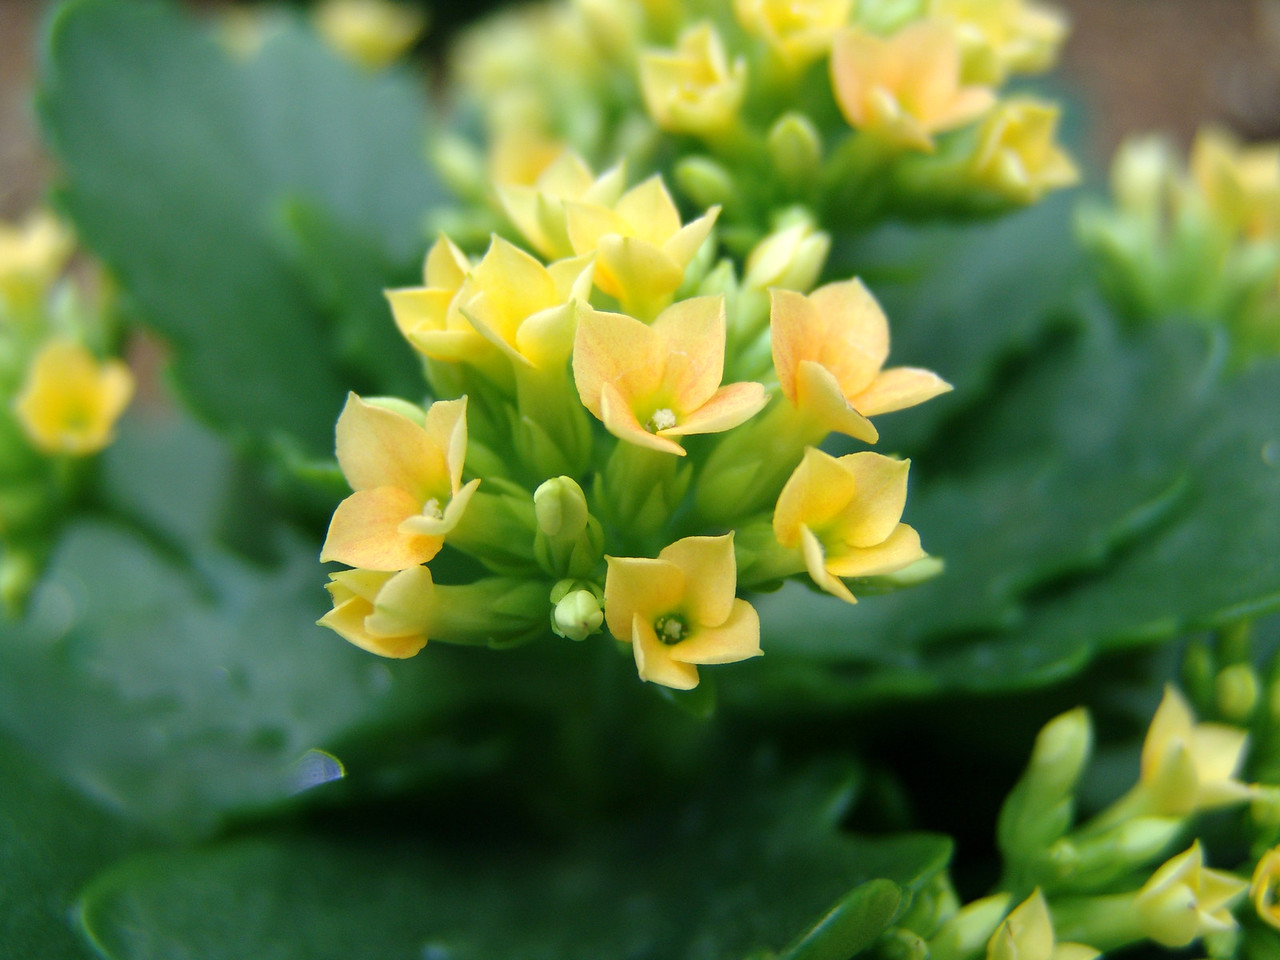 Another succulent type plant with very small flowers. Colour enhanced to bring out the yellow a bit more.